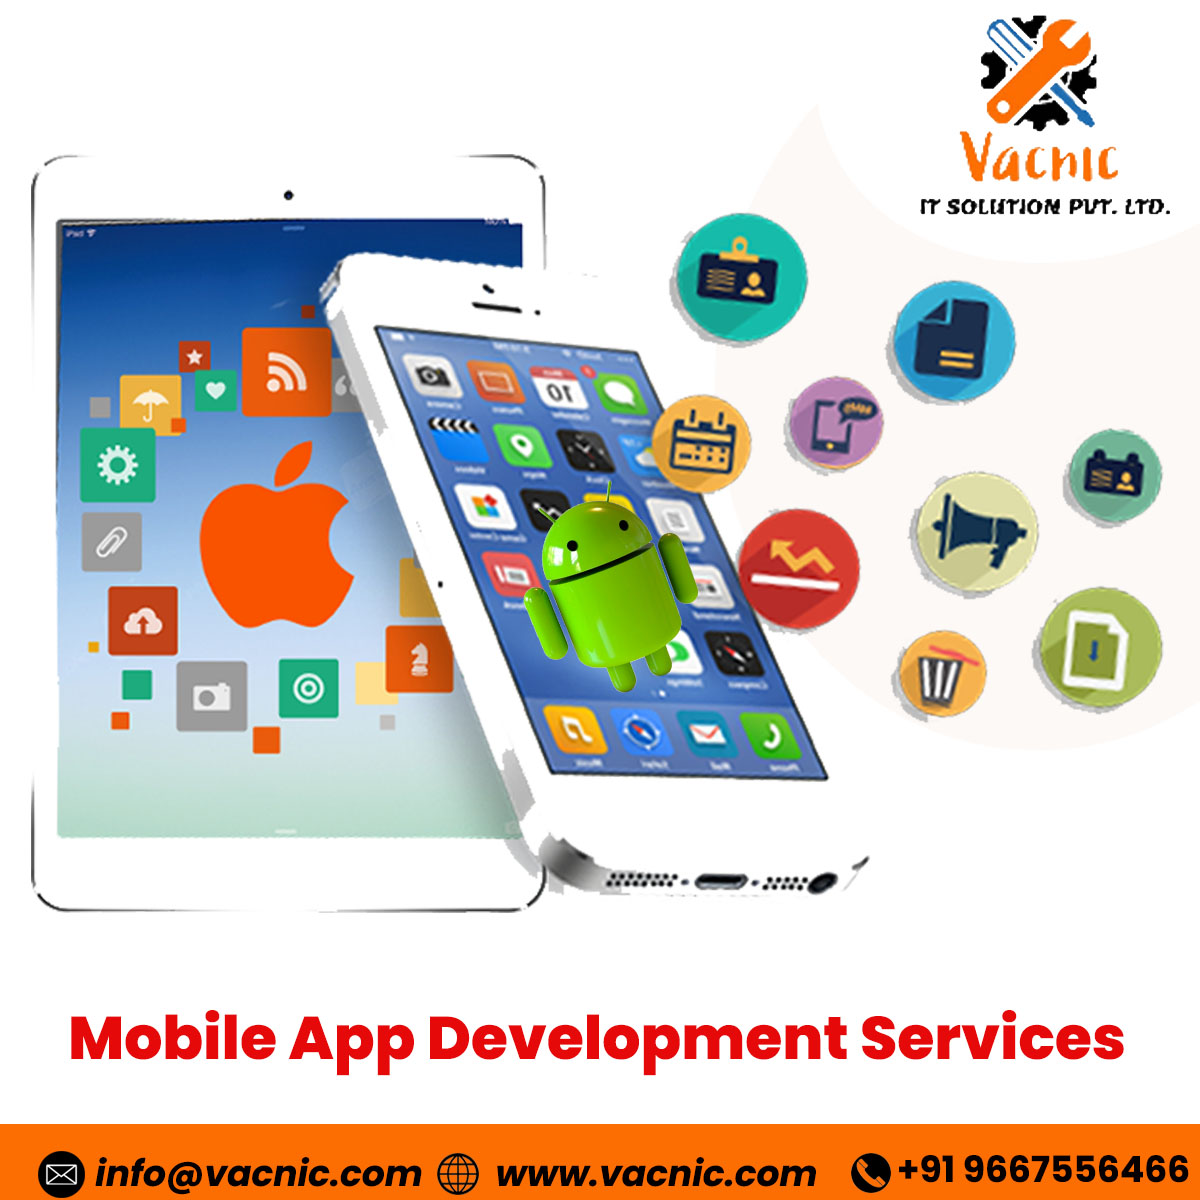 Custom App? Connect with Top App Development Services Agency in Delhi NCR/ Noida! Vacnic IT Solution